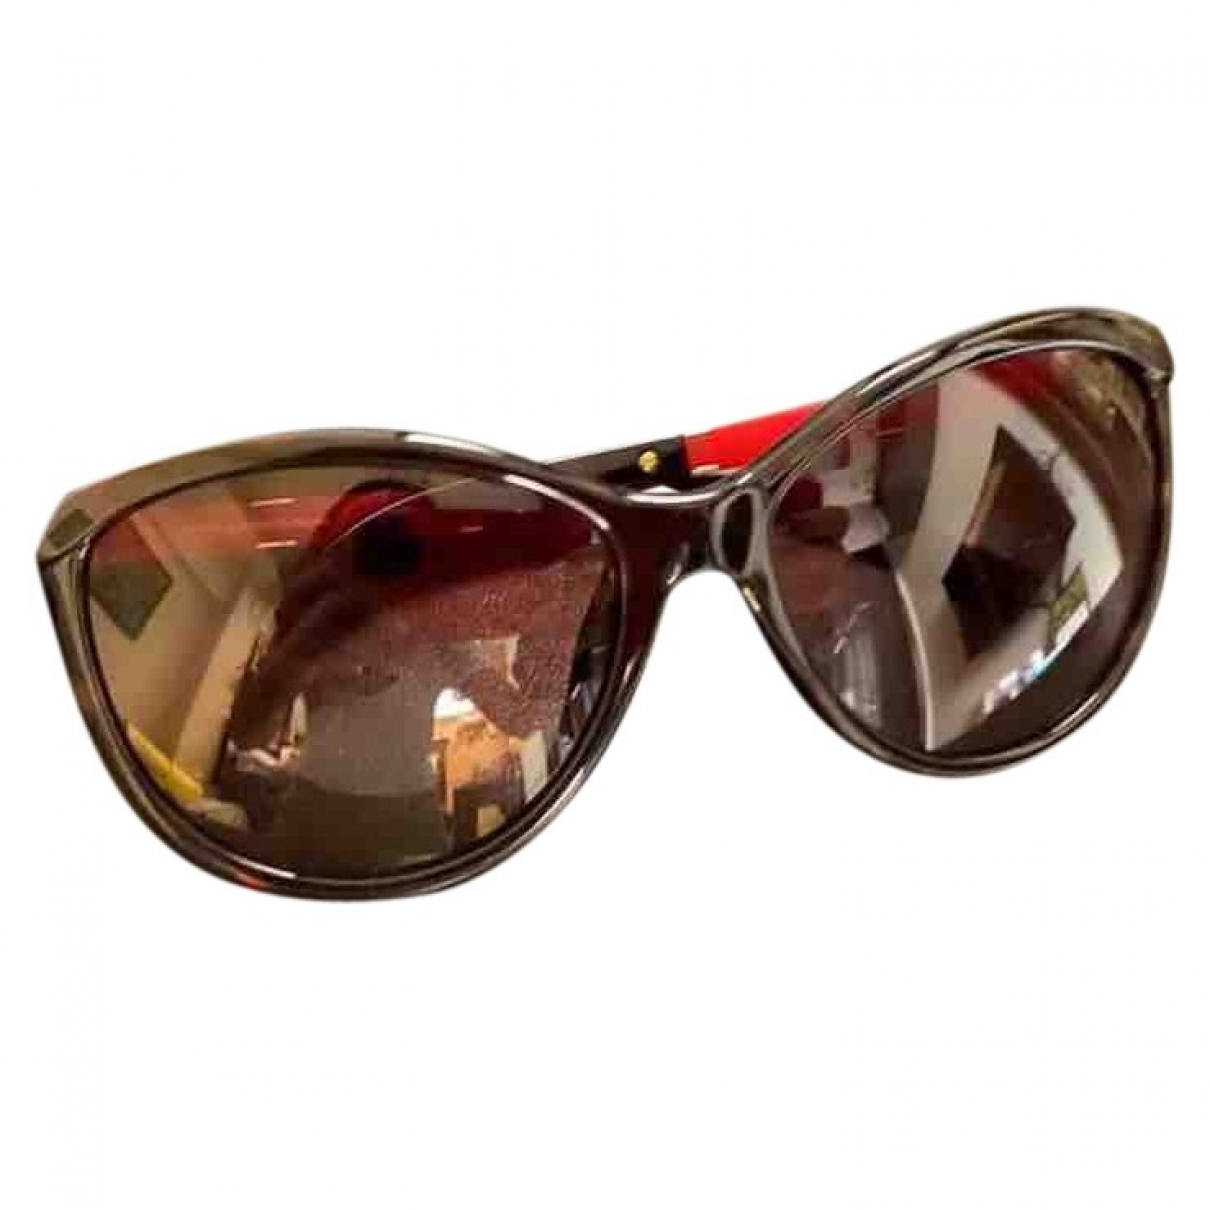 Diane Von Furstenberg \N Sunglasses for Women S International